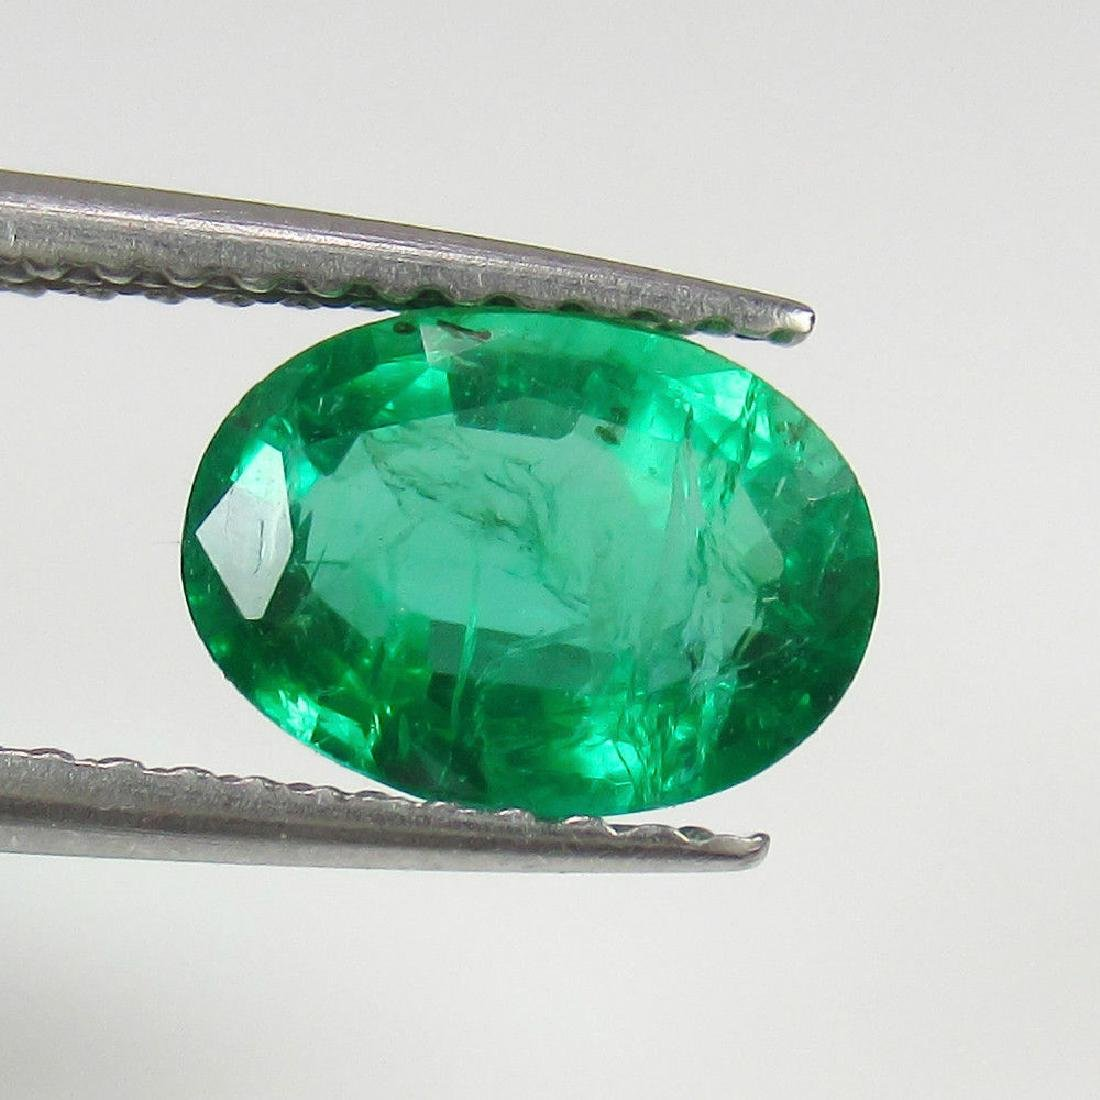 1.20 Ct Genuine Zambian Emerald Top Quality AAA++ Green